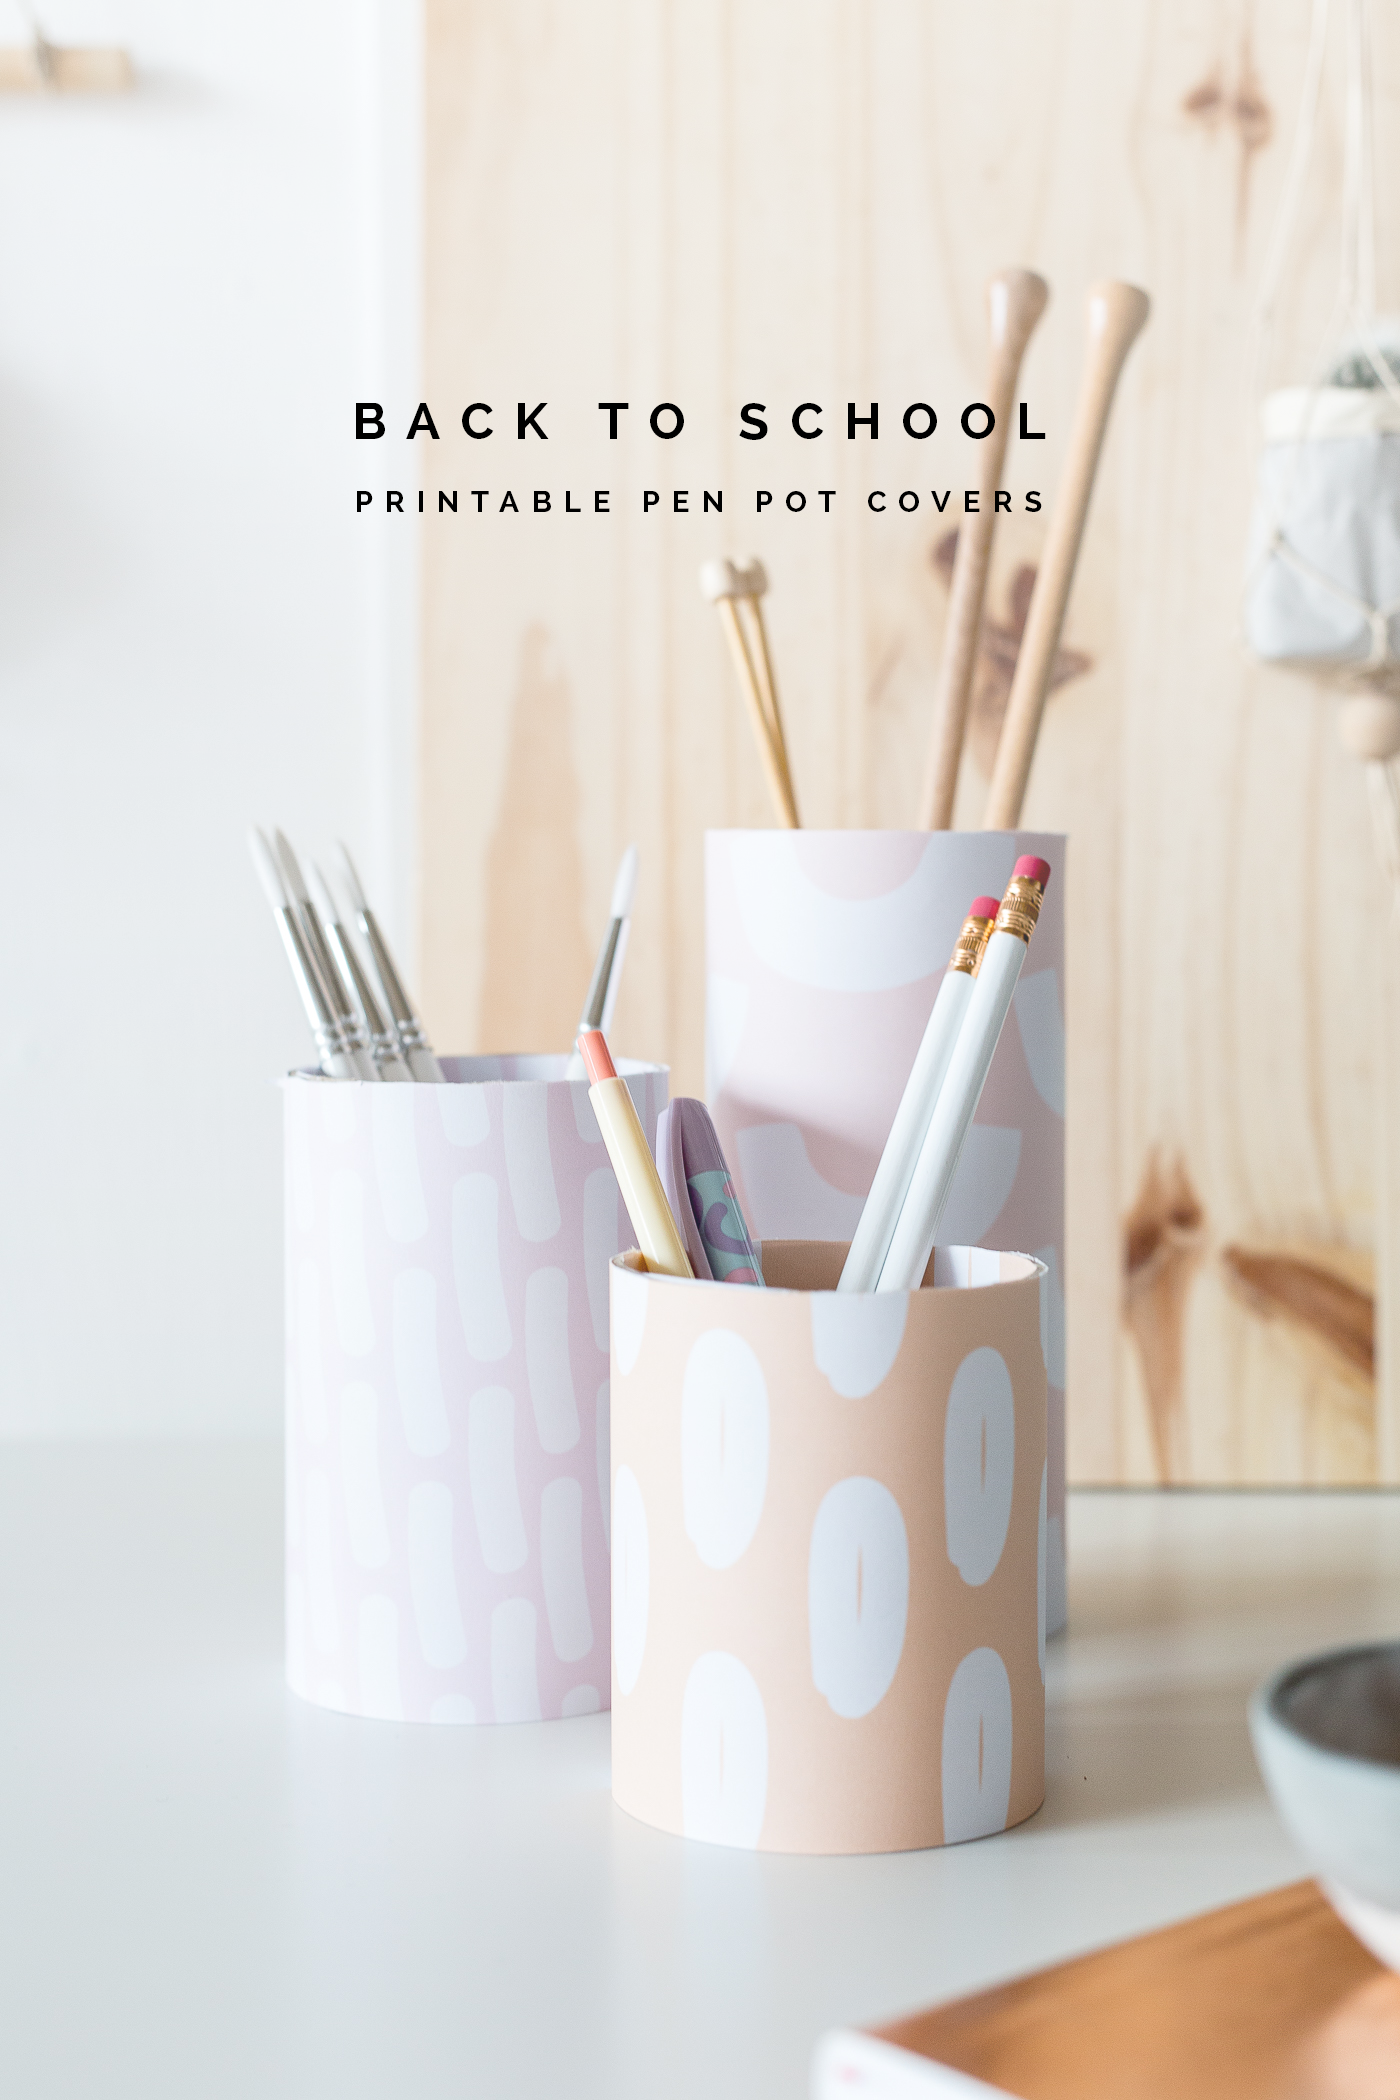 Back to School Printable Pen Pot Covers | @fallfordiy